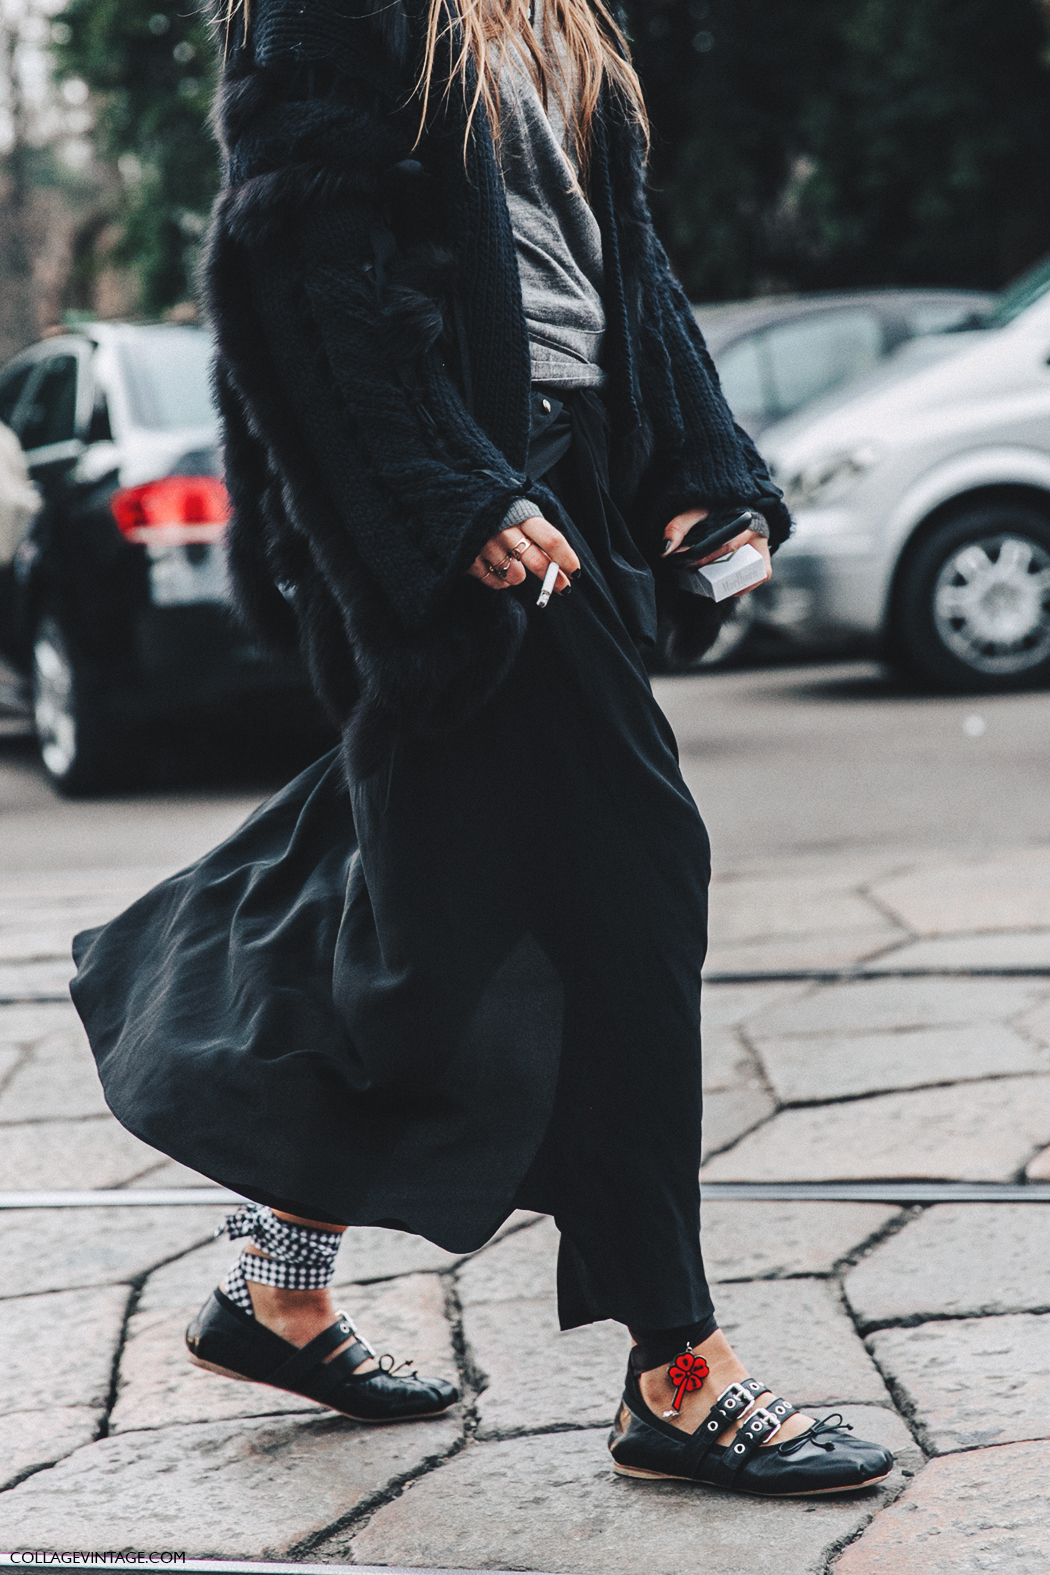 Milan_Fashion_Week_Fall_16-MFW-Street_Style-Collage_Vintage-Carlotta_Oddi-Miu_Miu_Ballerinas-3